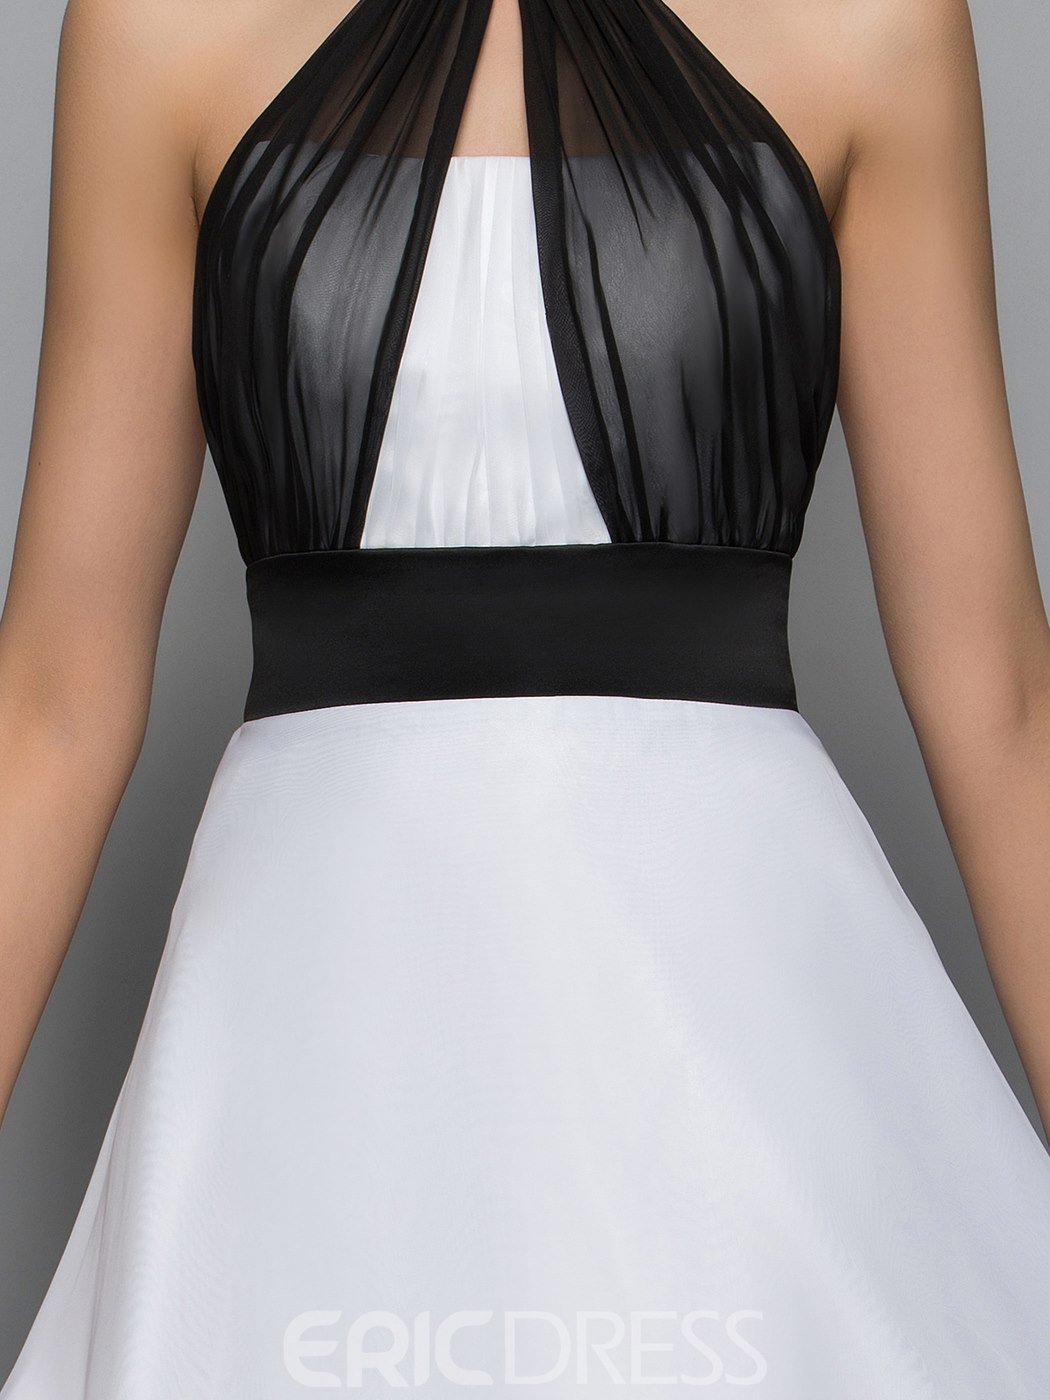 Ericdress Halter Bowknot High Low Backless Cocktail Dress